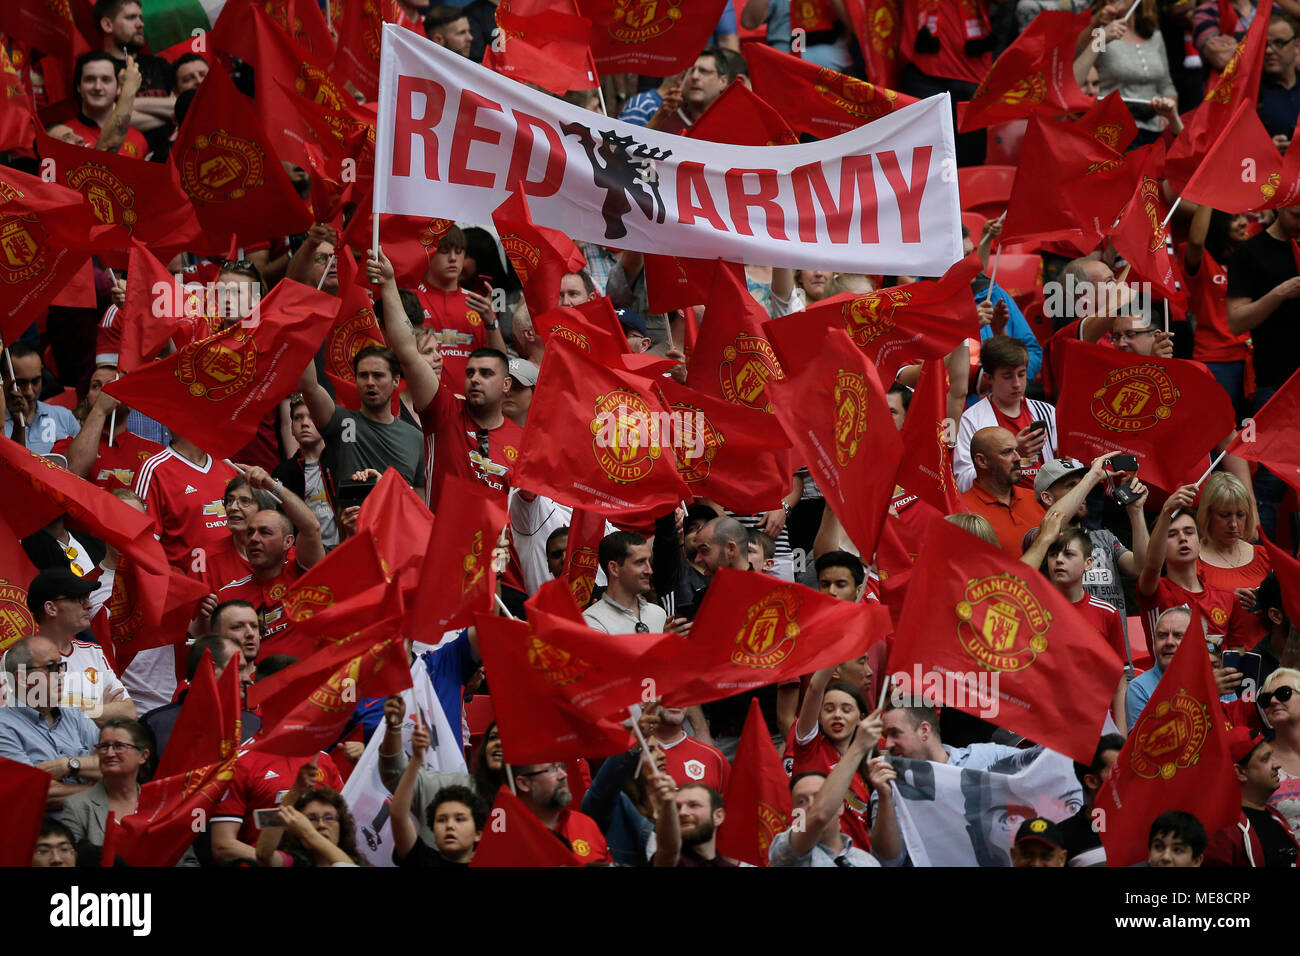 Manchester United Fans High Resolution Stock Photography And Images Alamy